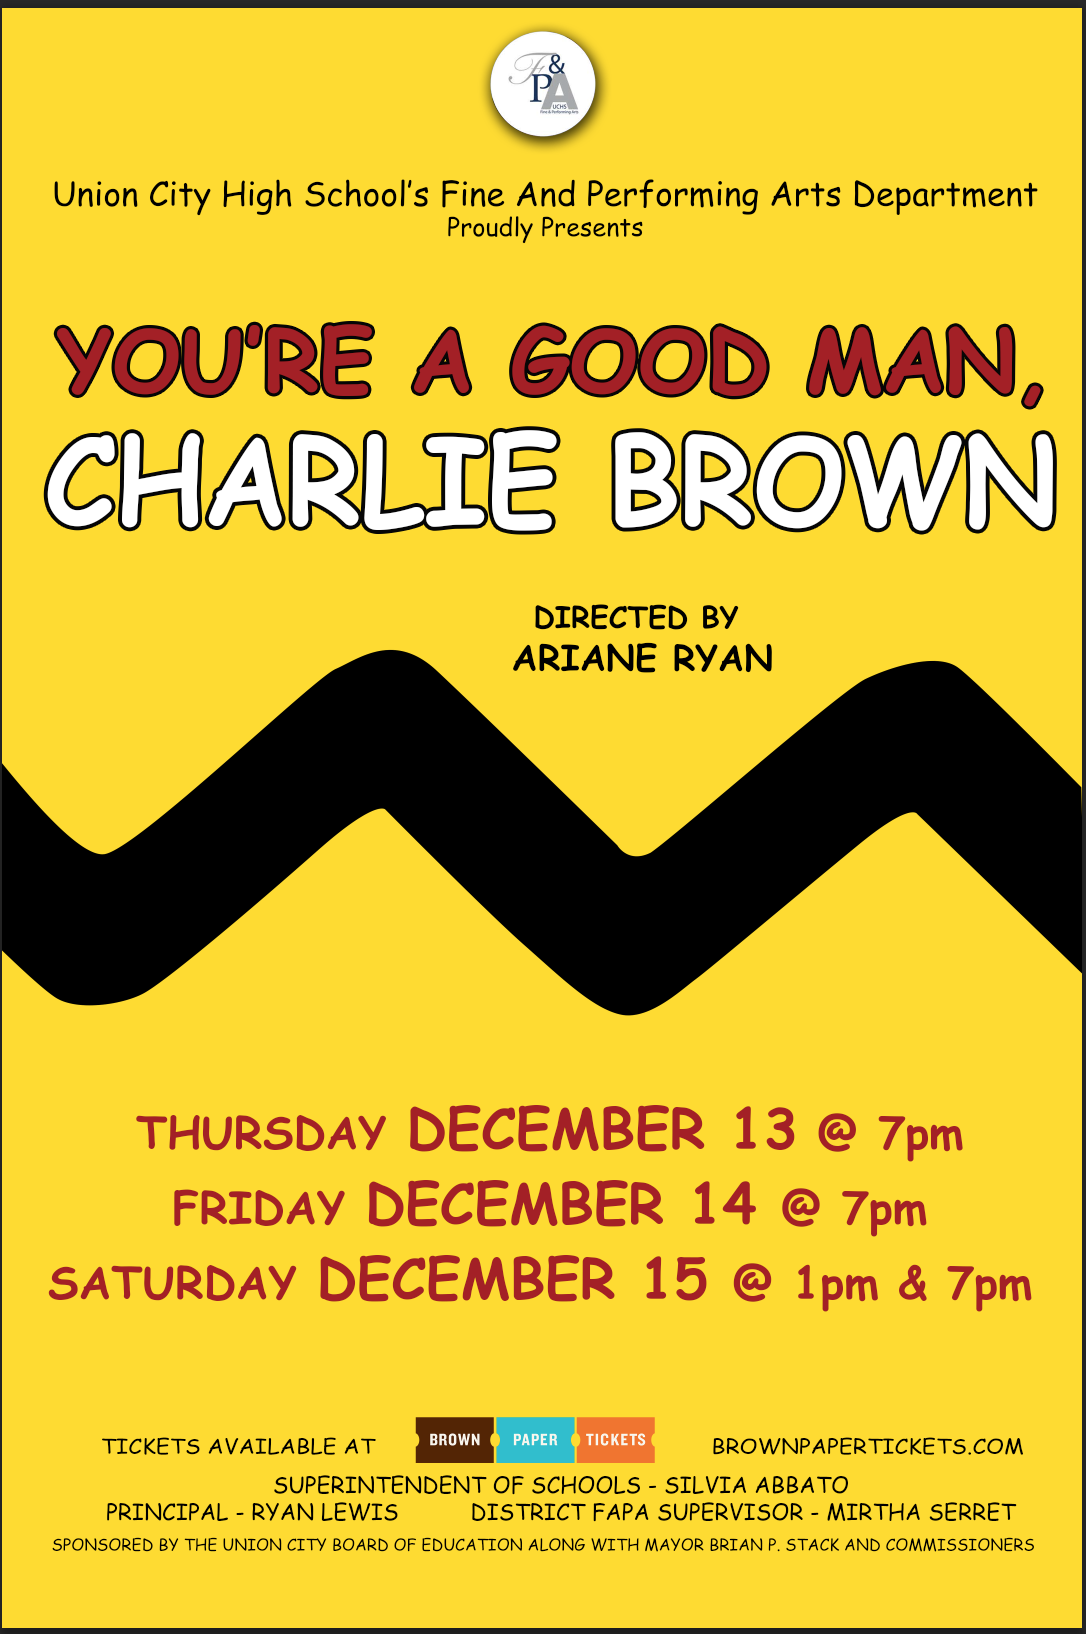 You're a Good Man Charlie Brown Poster